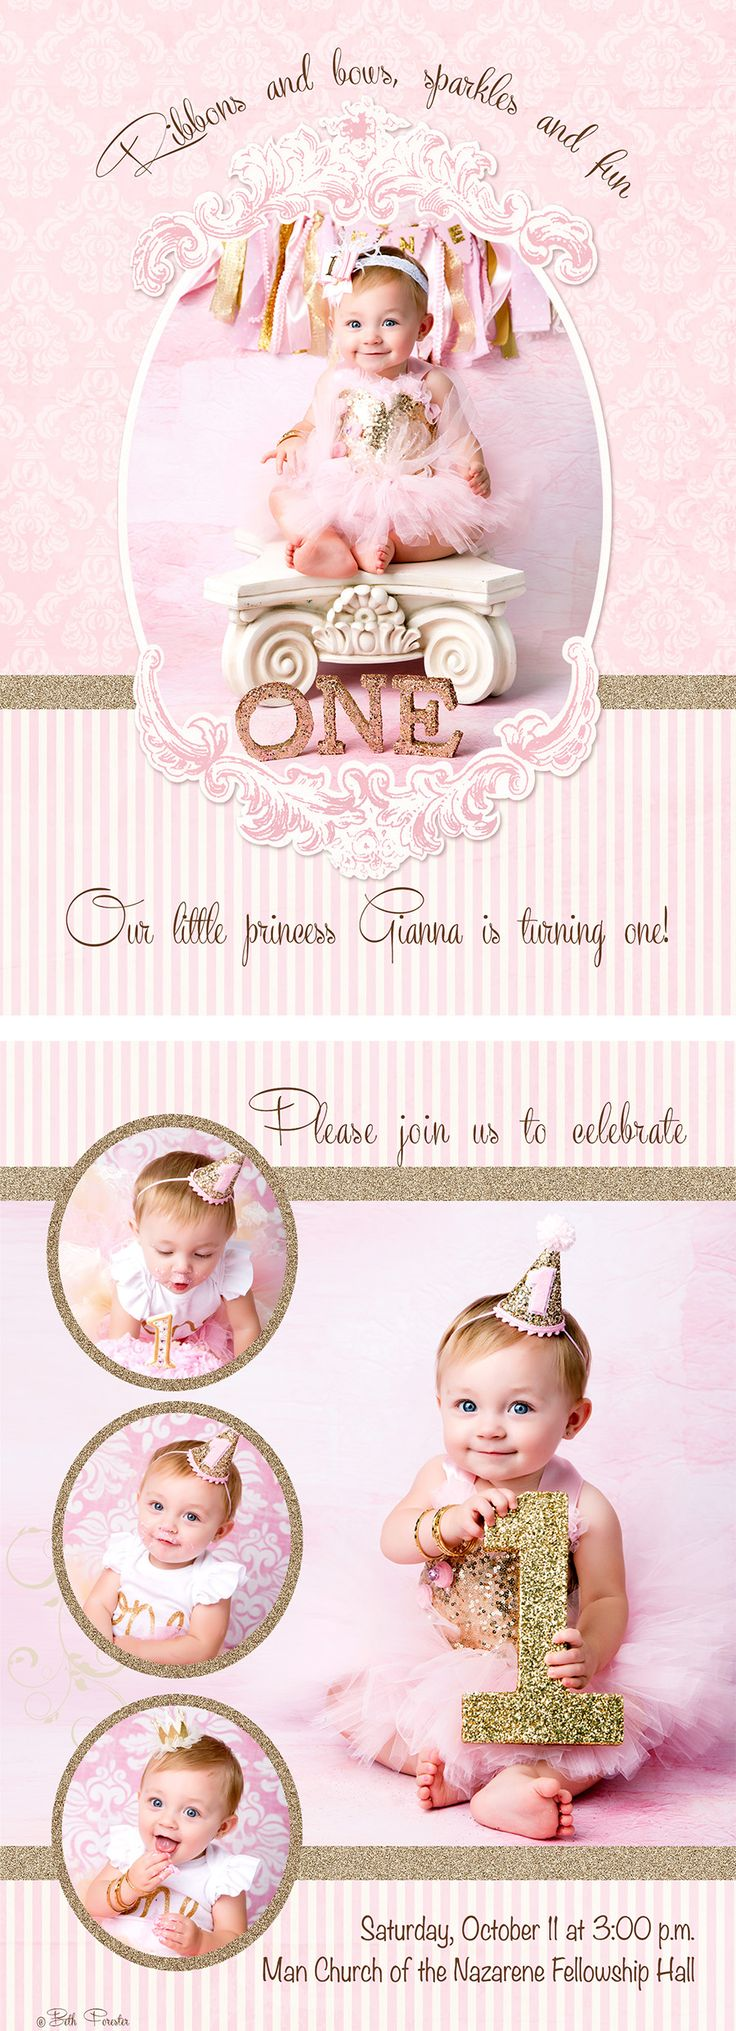 Invitation For Baby Christening for best invitation layout